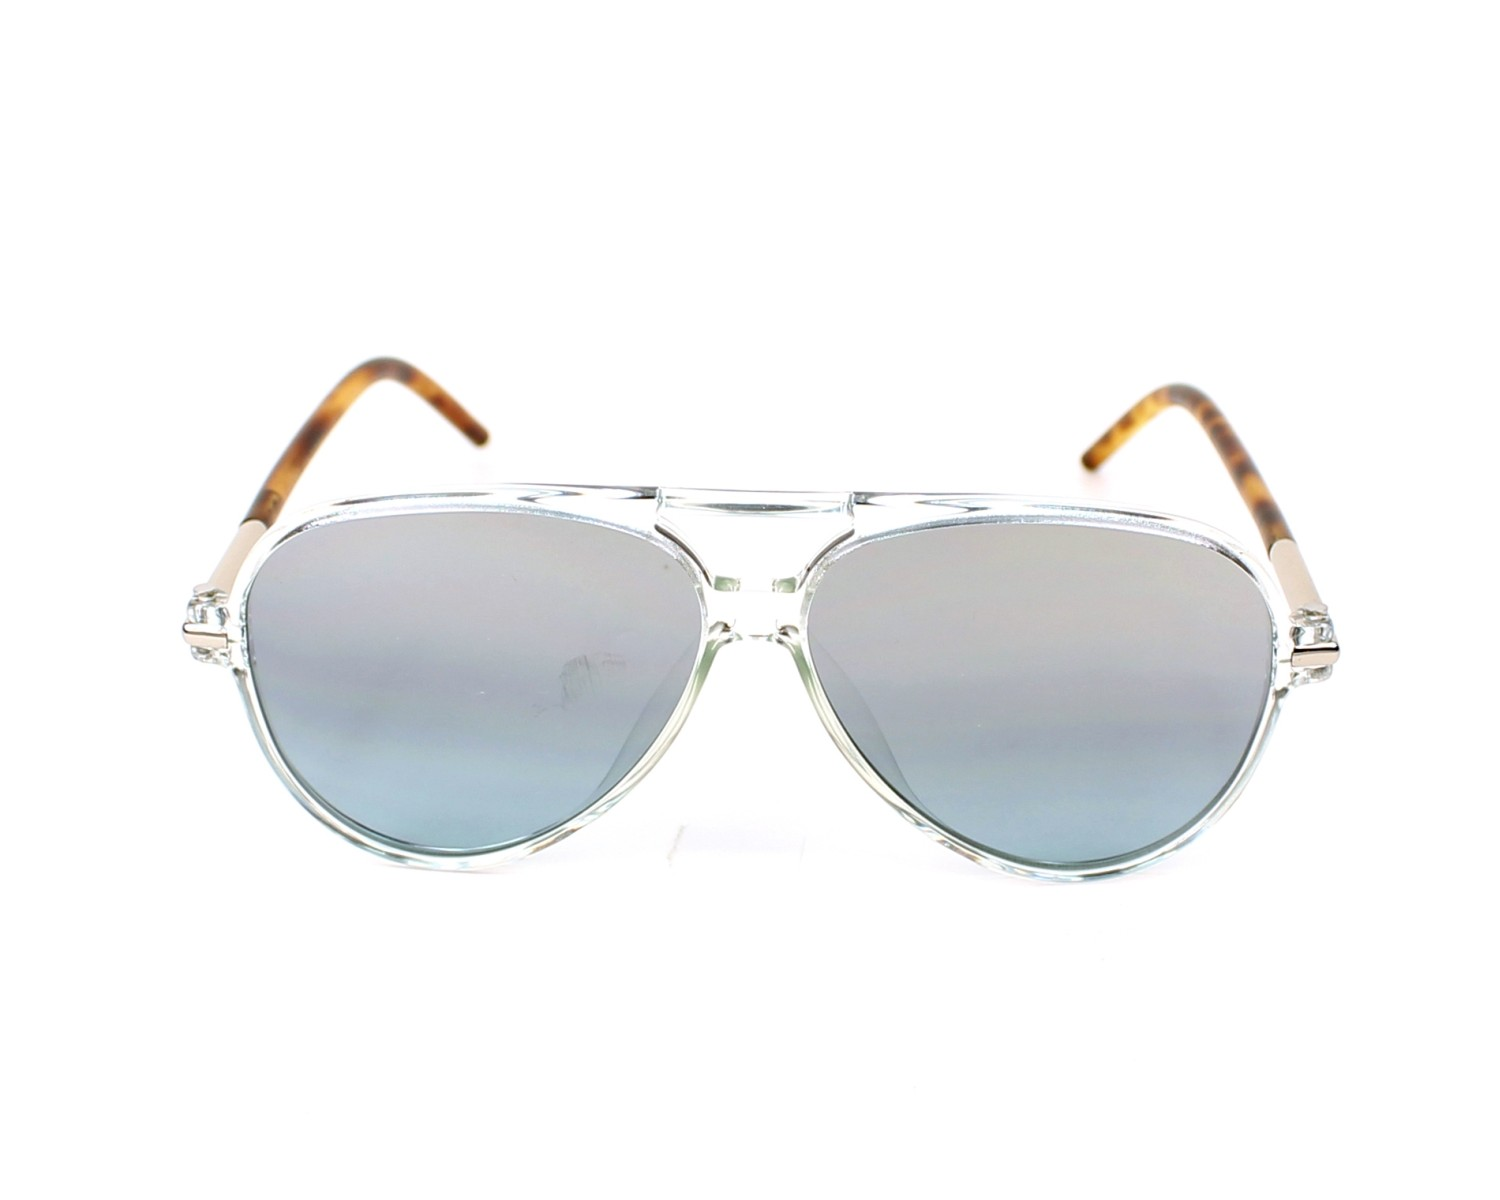 Marc Jacobs Sunglasses MARC-44-S TPD/I8 Crystal